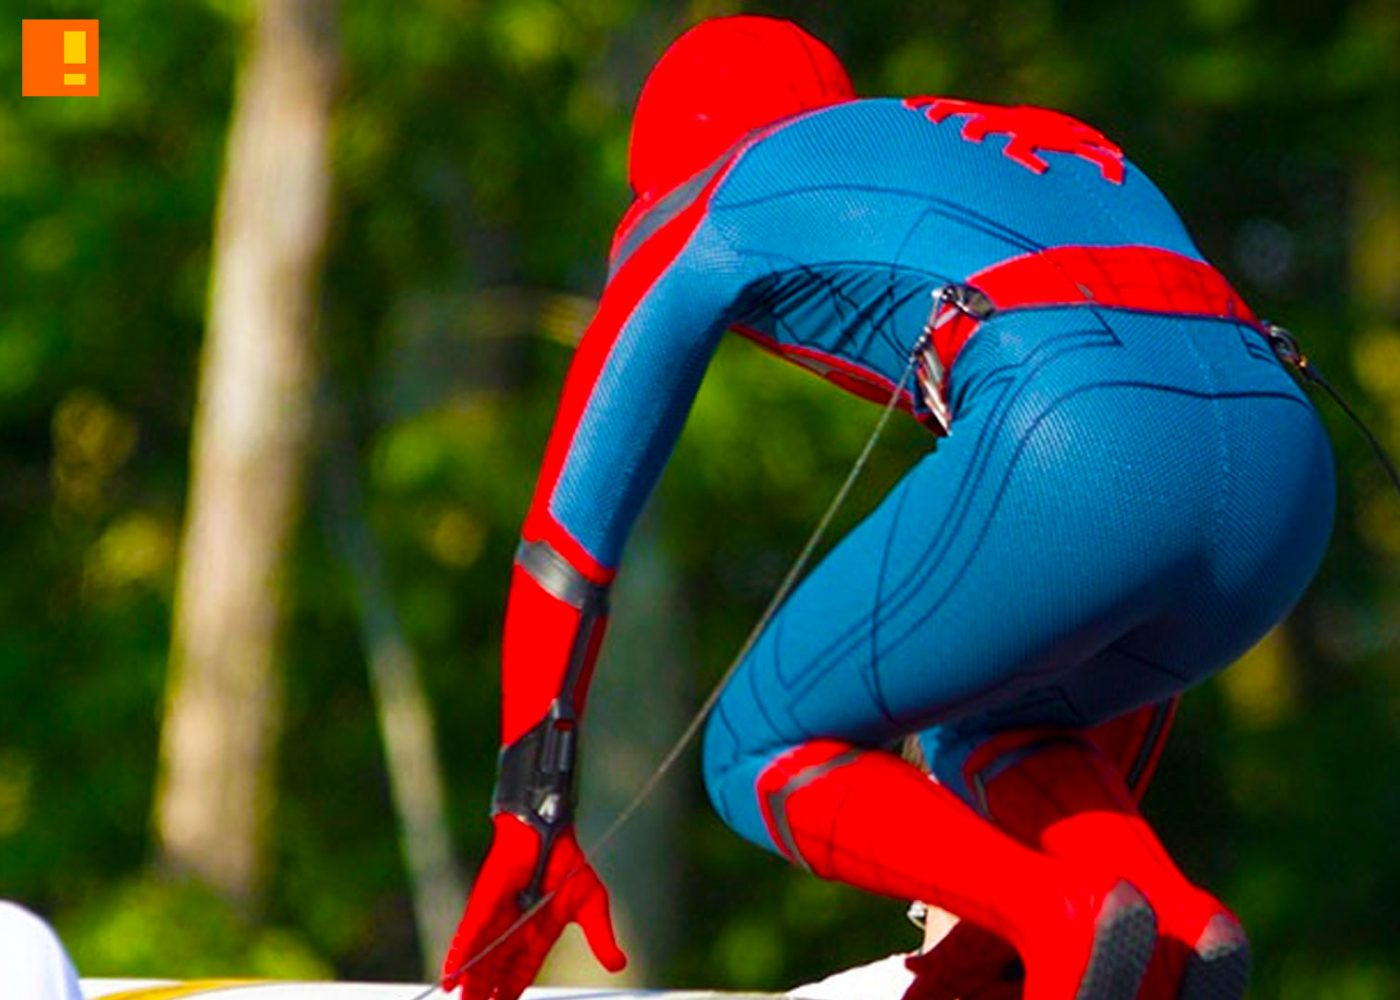 spider-man, spiderman, costume, homecoming, entertainment on tap, the action pixel, @theactionpixel